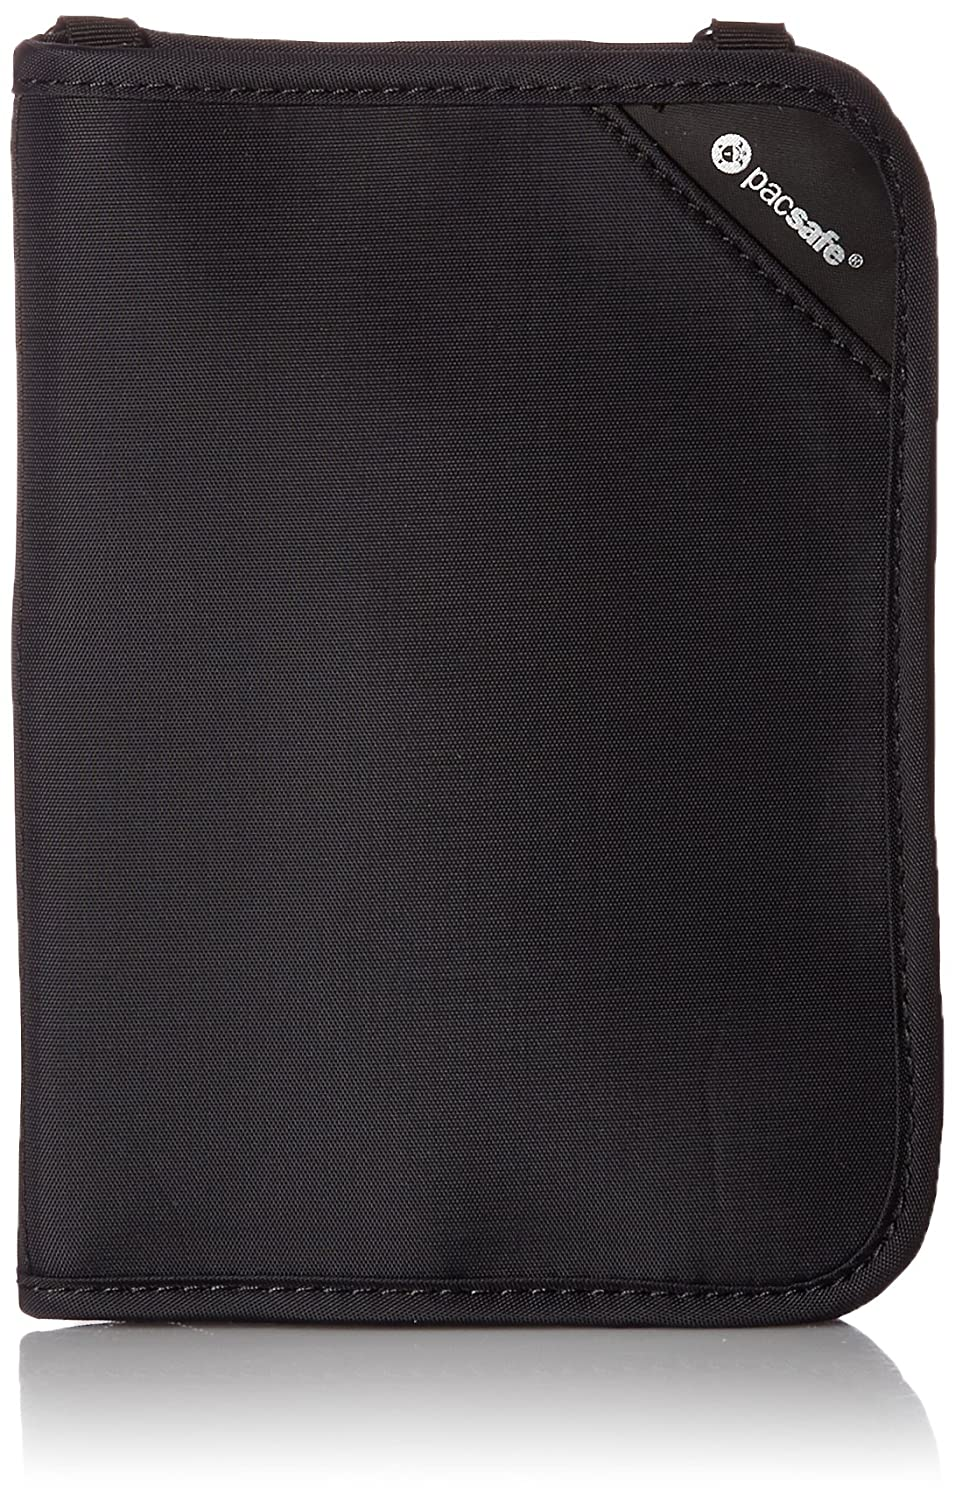 Pacsafe RFIDsafe V150 Anti-Theft RFID Blocking Compact Passport Wallet, Black OUTS2 10561